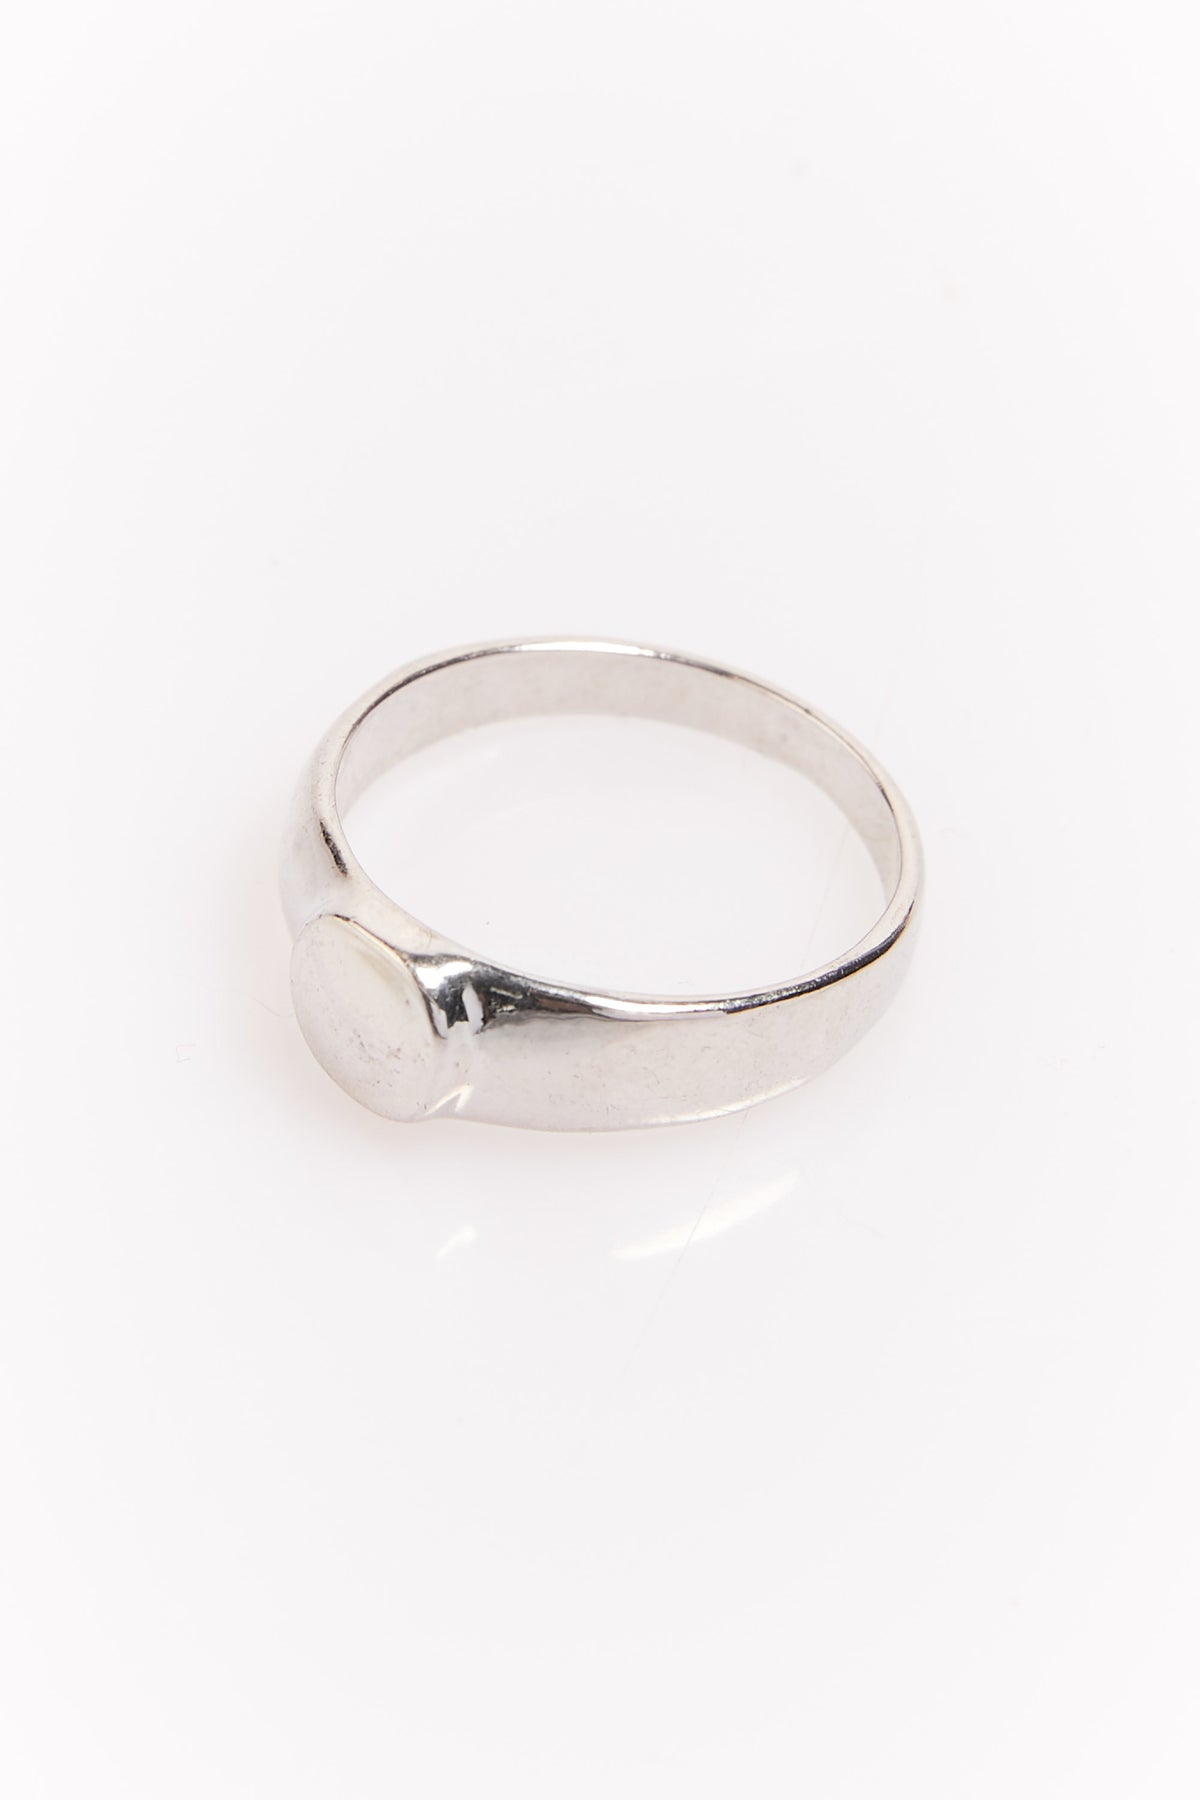 Nth Circle Signet Ring Silver